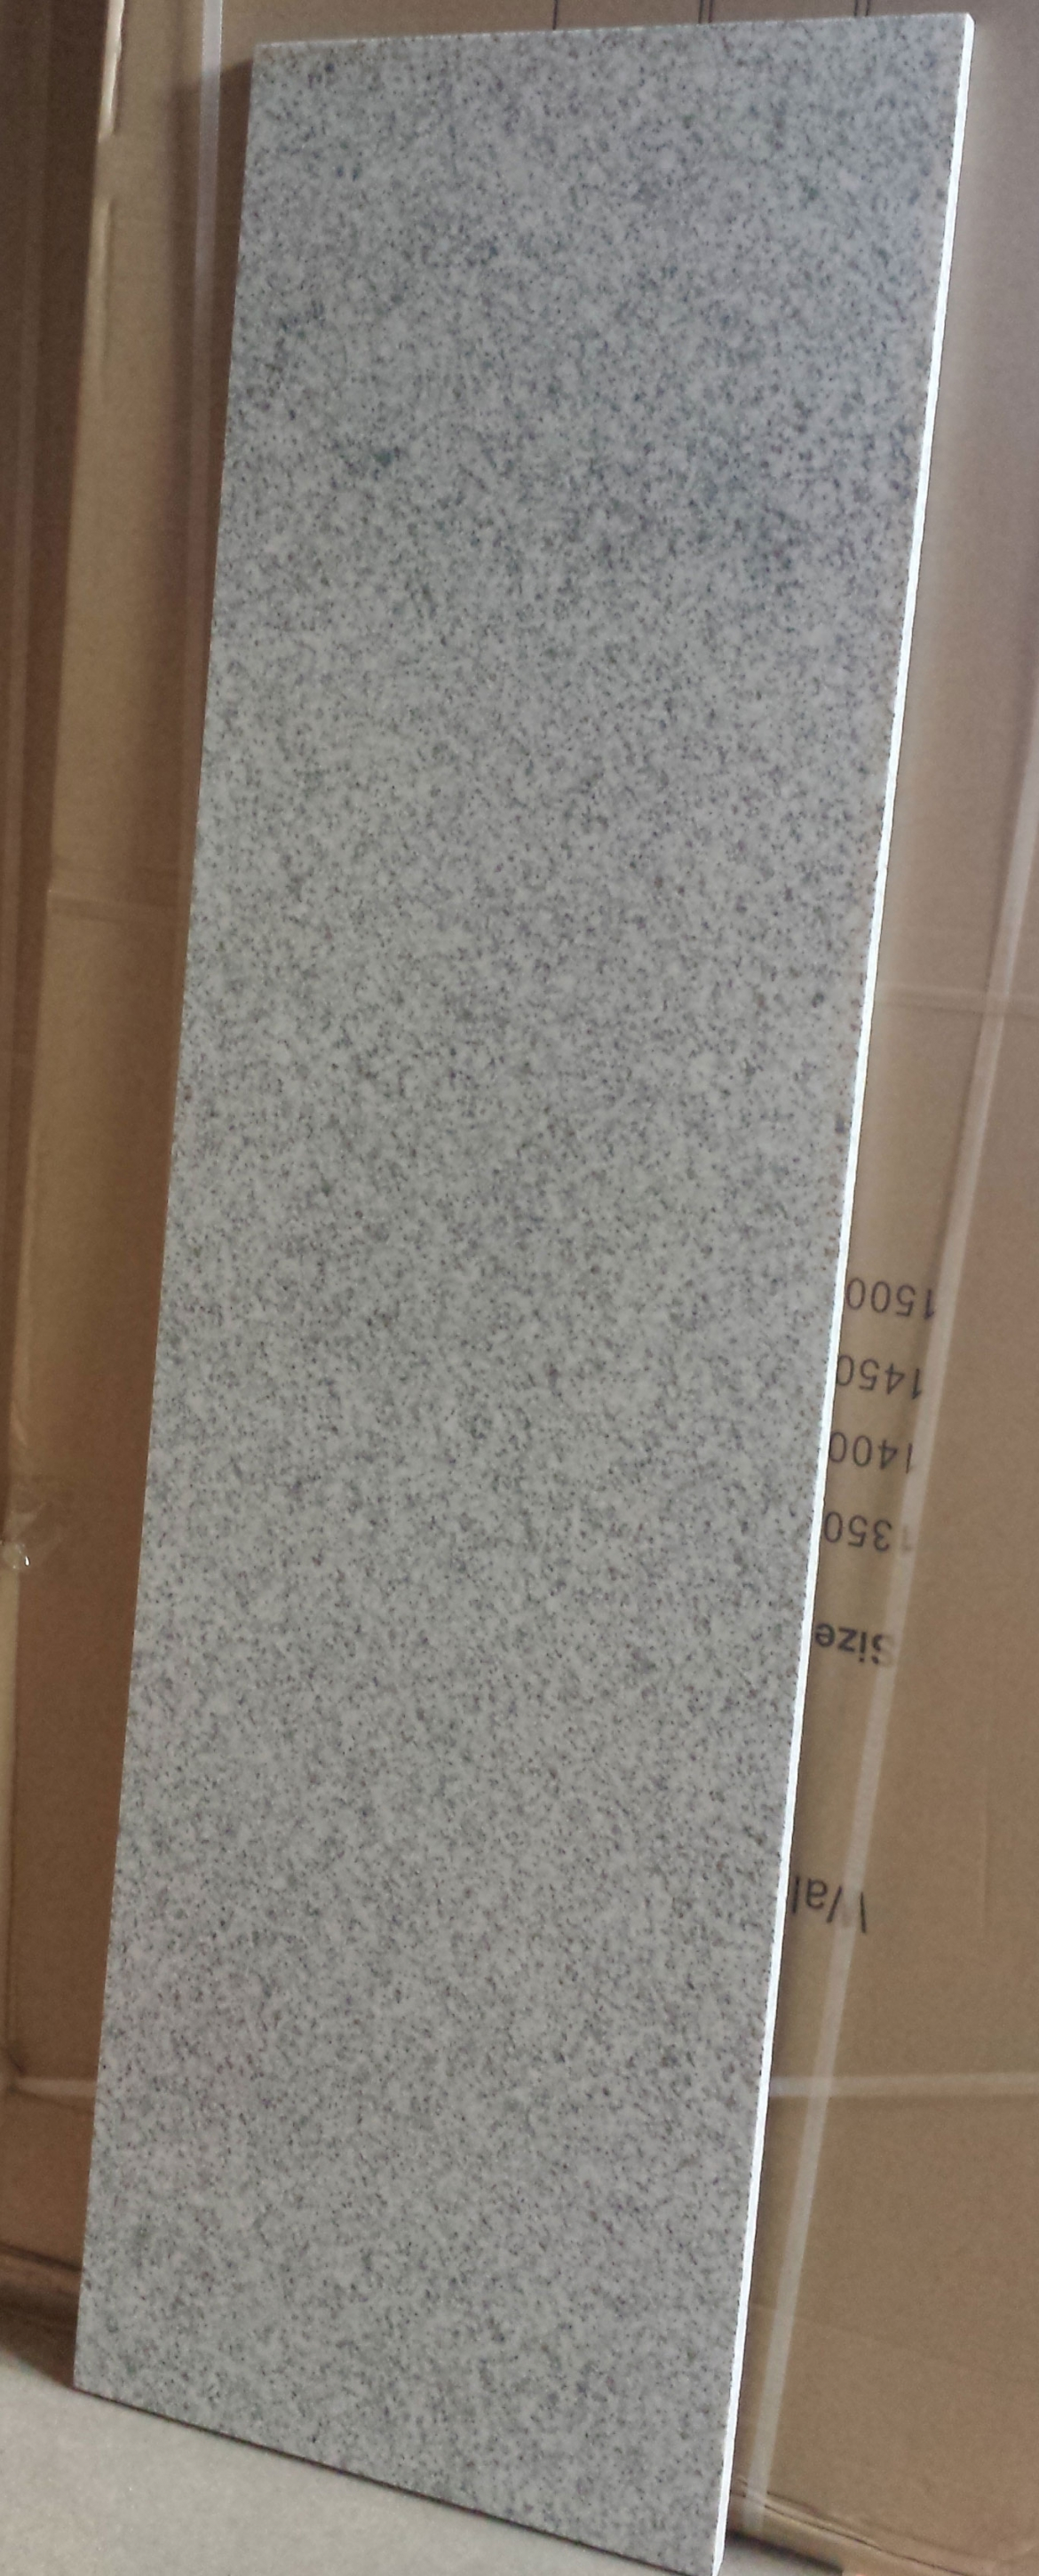 Granite Bench top for bathroom vanity [1700x470x20 mm]